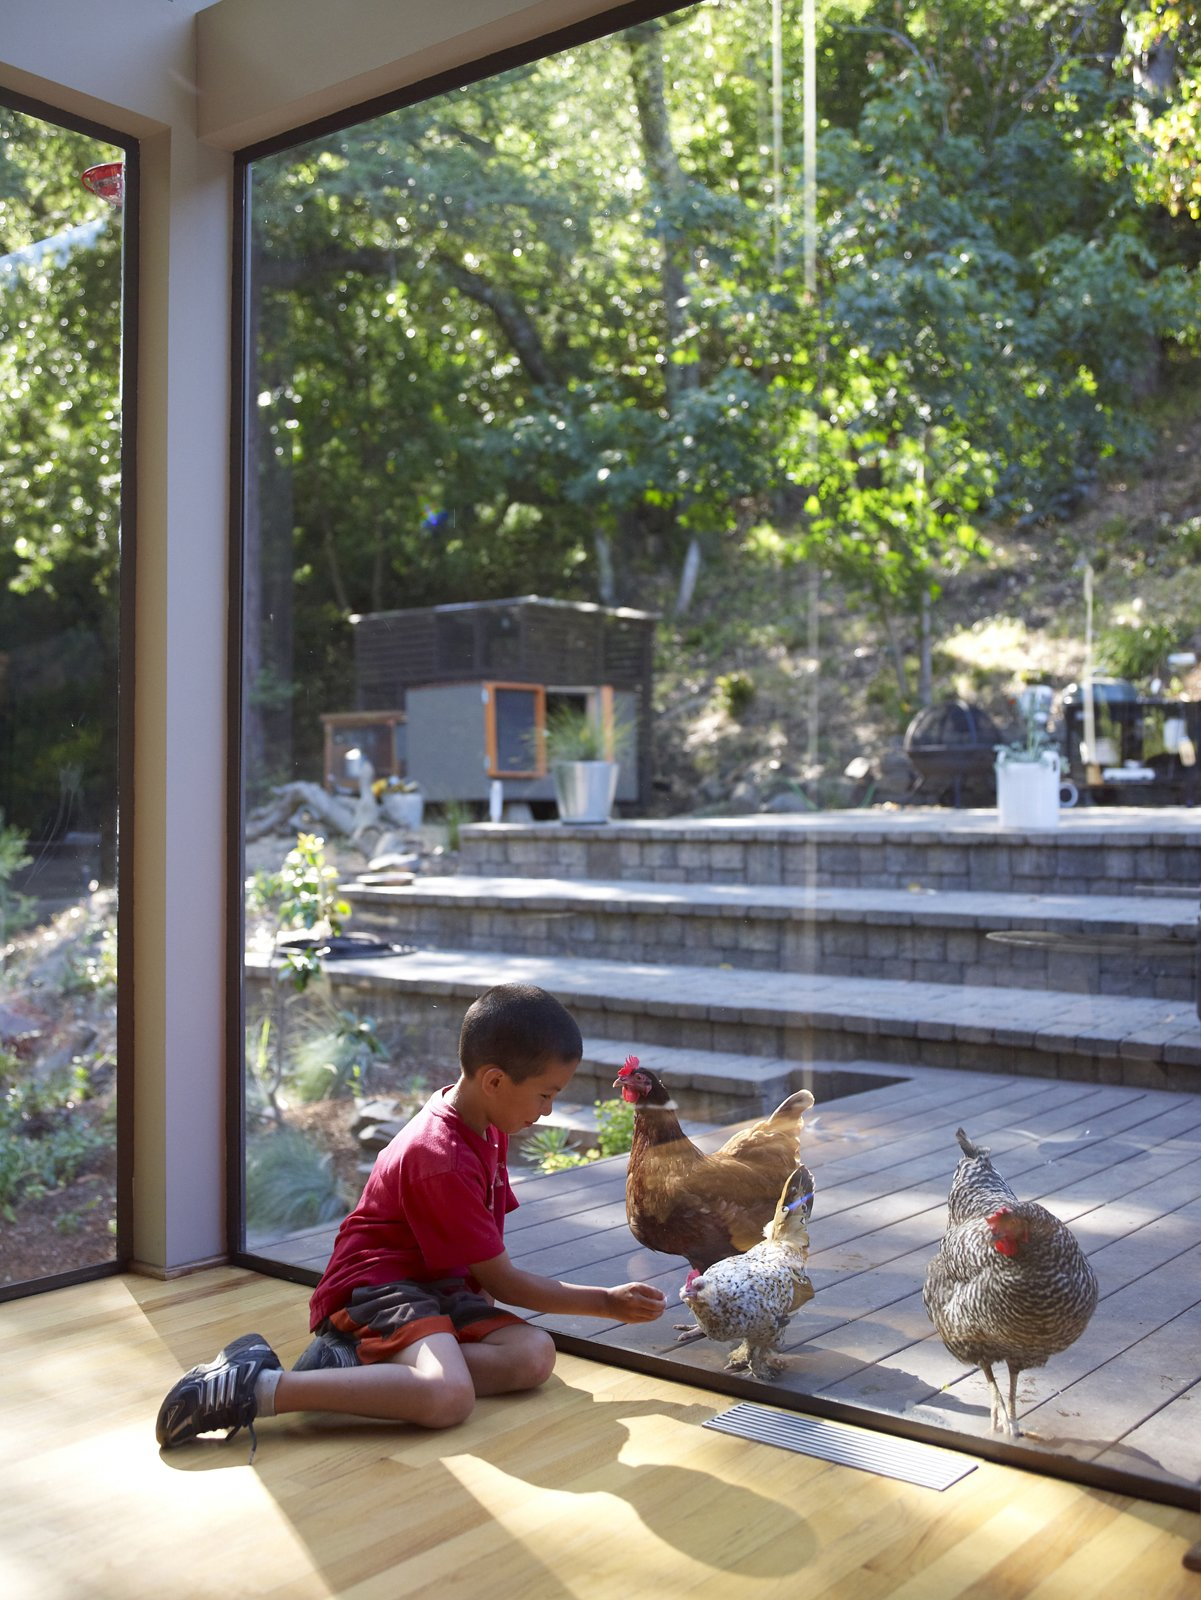 Chicken under glass? Apolo will settle for eggs for breakfast.